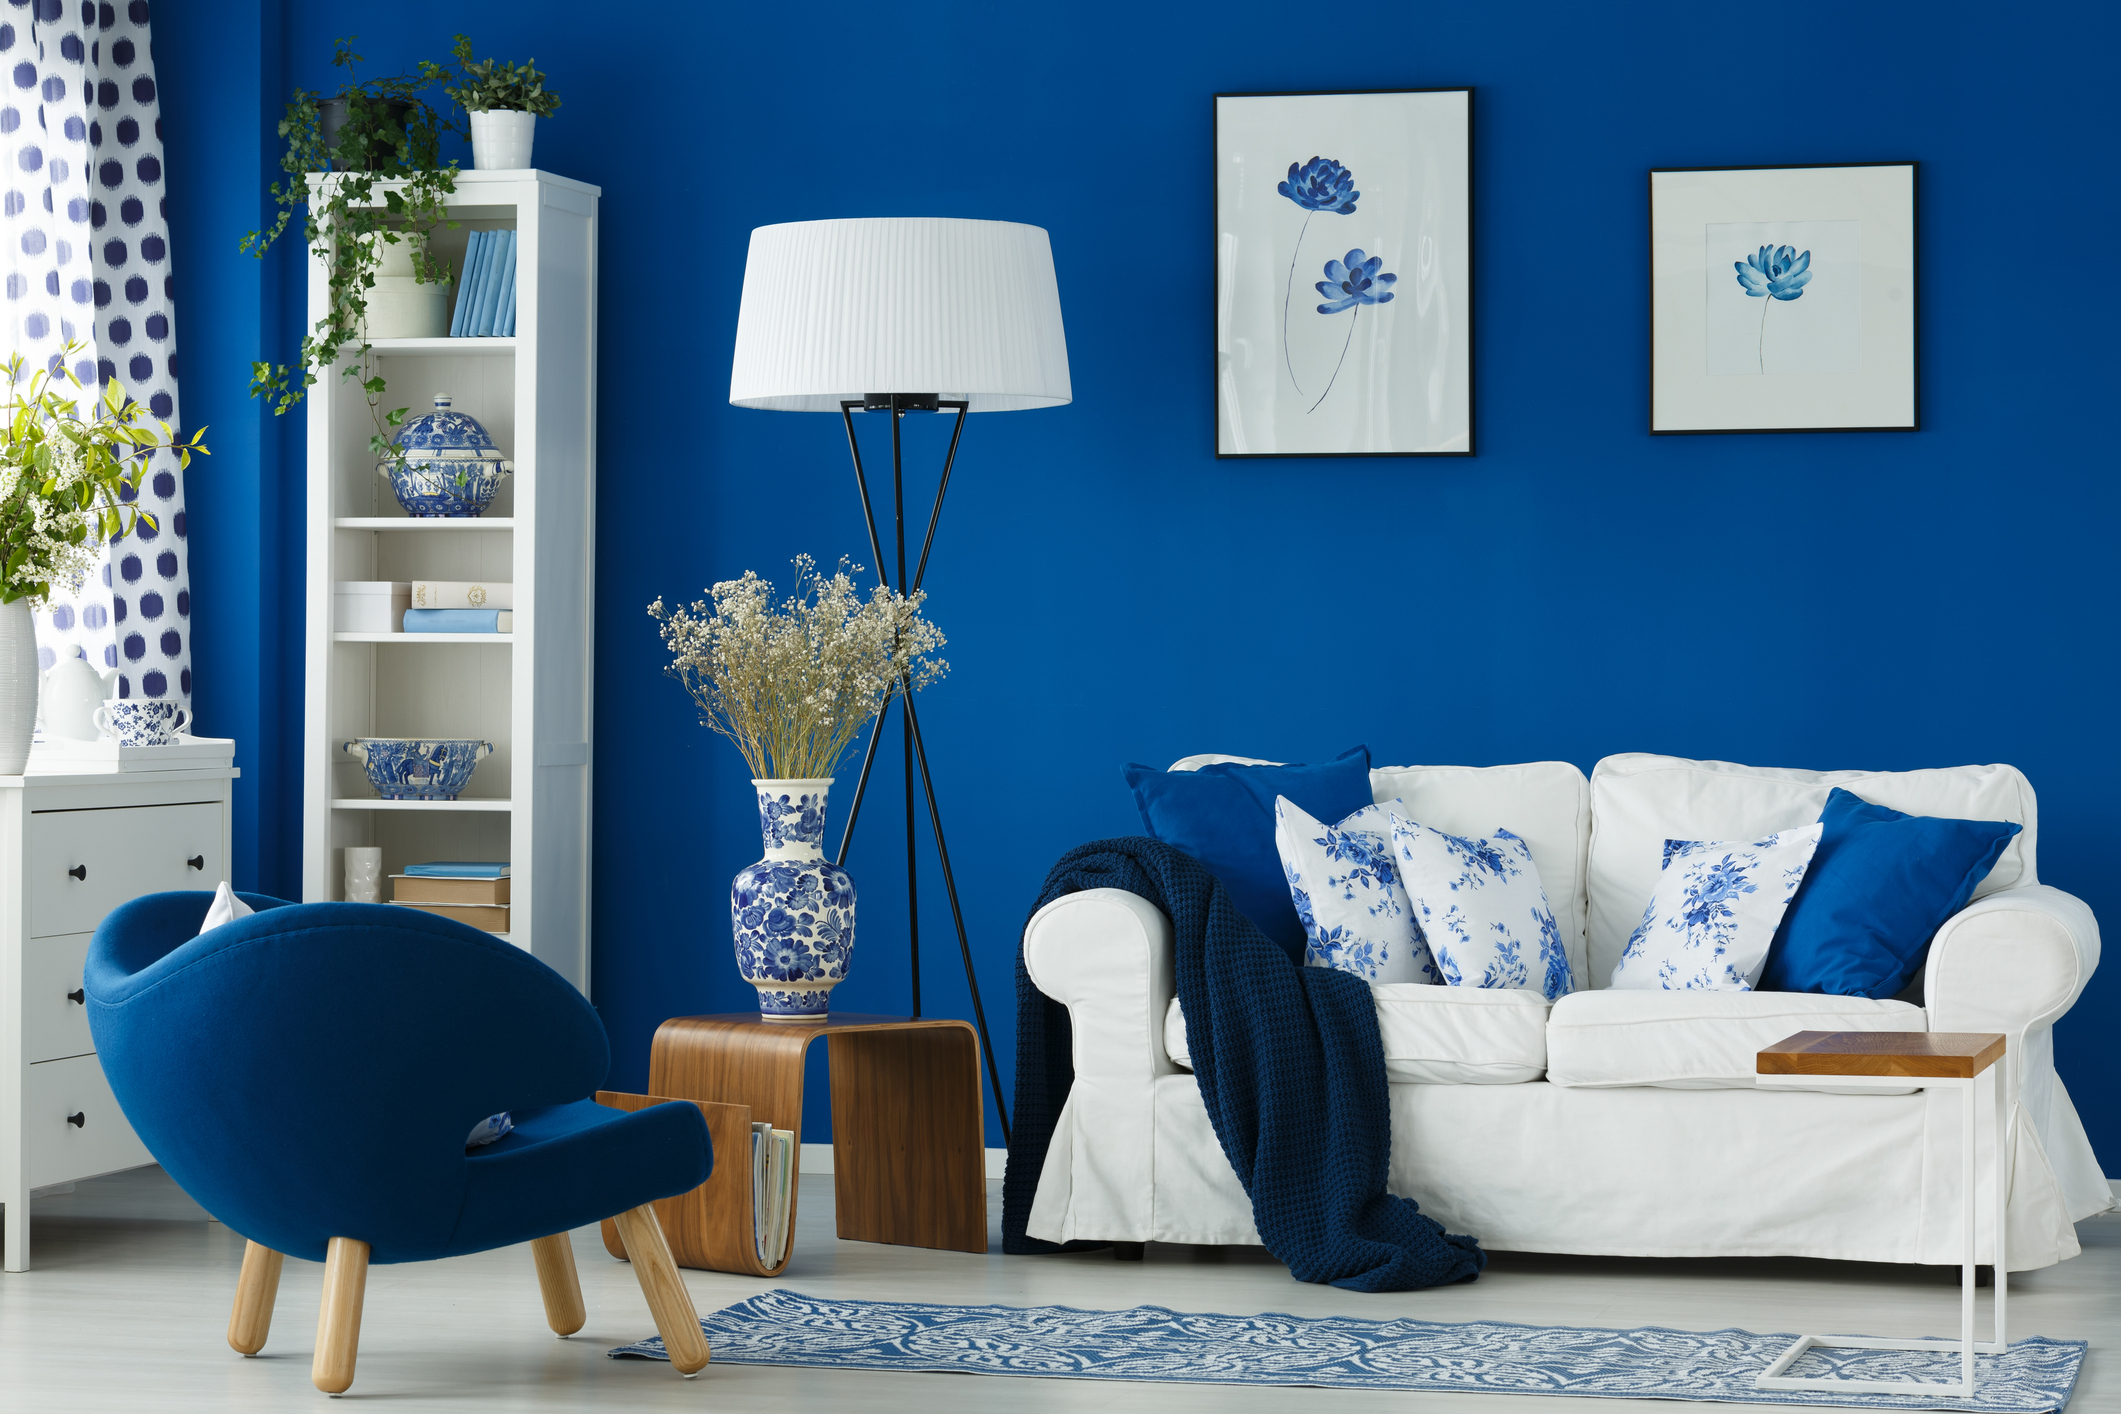 How to choose a paint color that suits   your interior